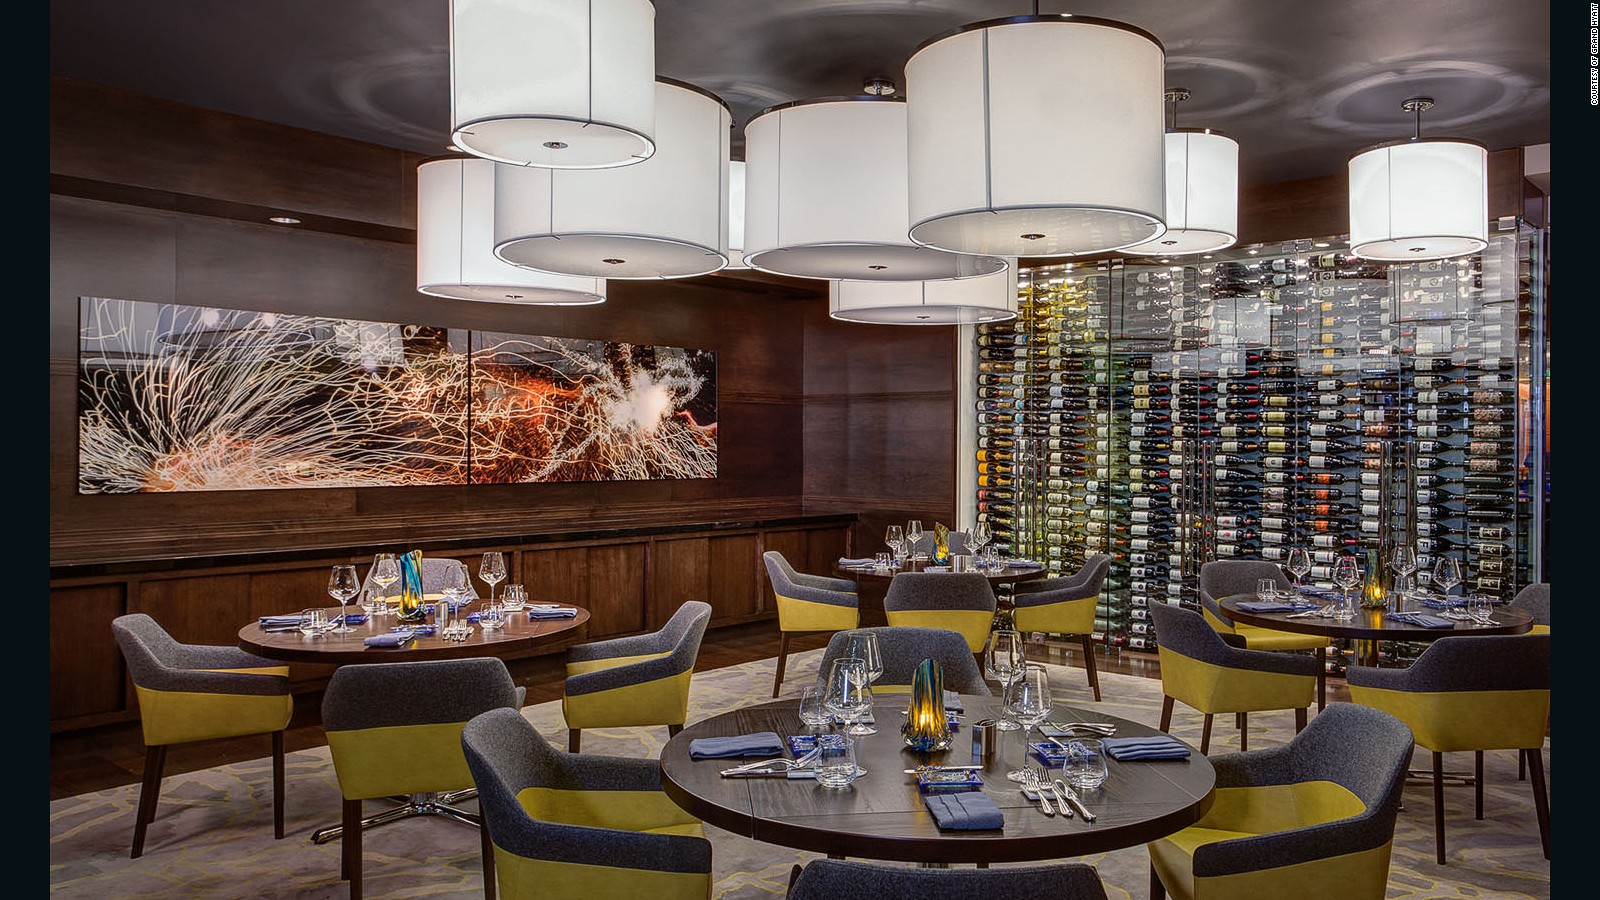 The Grand Hyatt Dallas is famous (or infamous) for its Wine Wall, where guests can dine surrounded by 972 bottles of the best vintages.